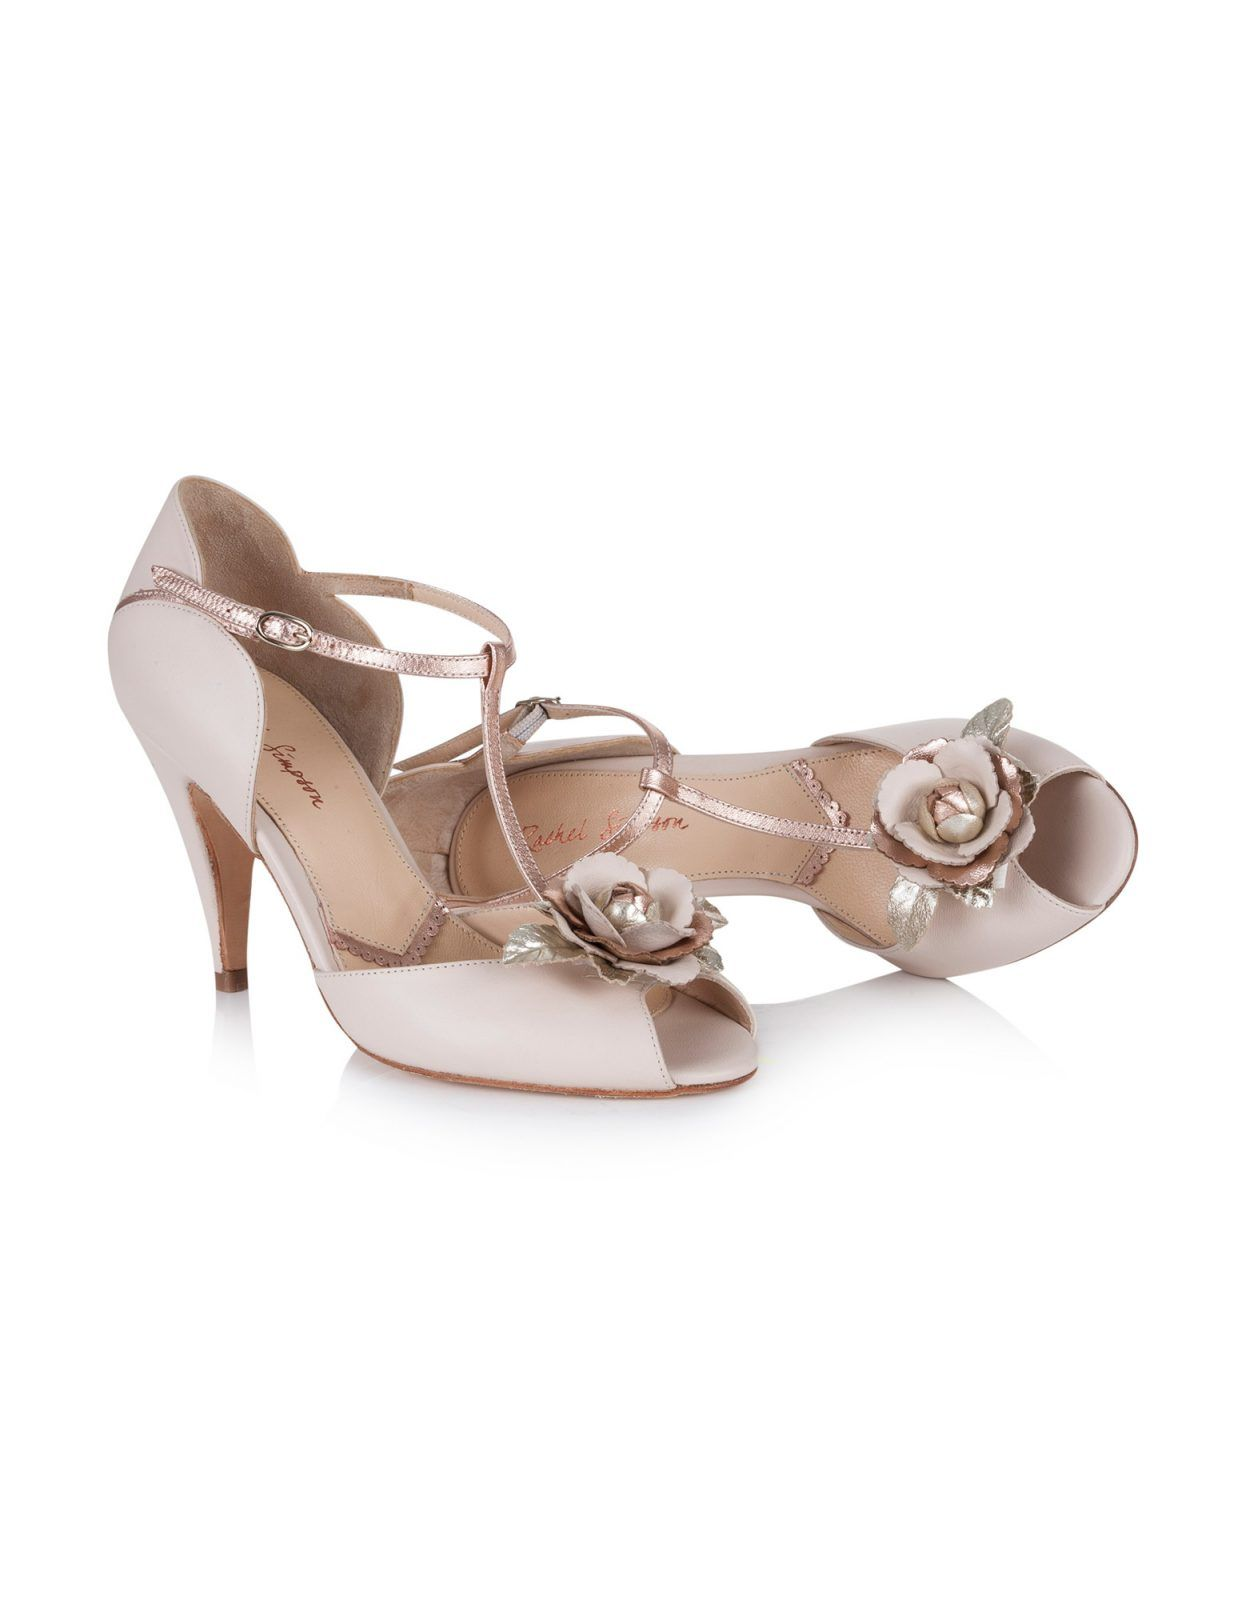 Gabriella Rose Gold Blush T Bar Wedding Shoes Rachel Simpson 9cm Heel